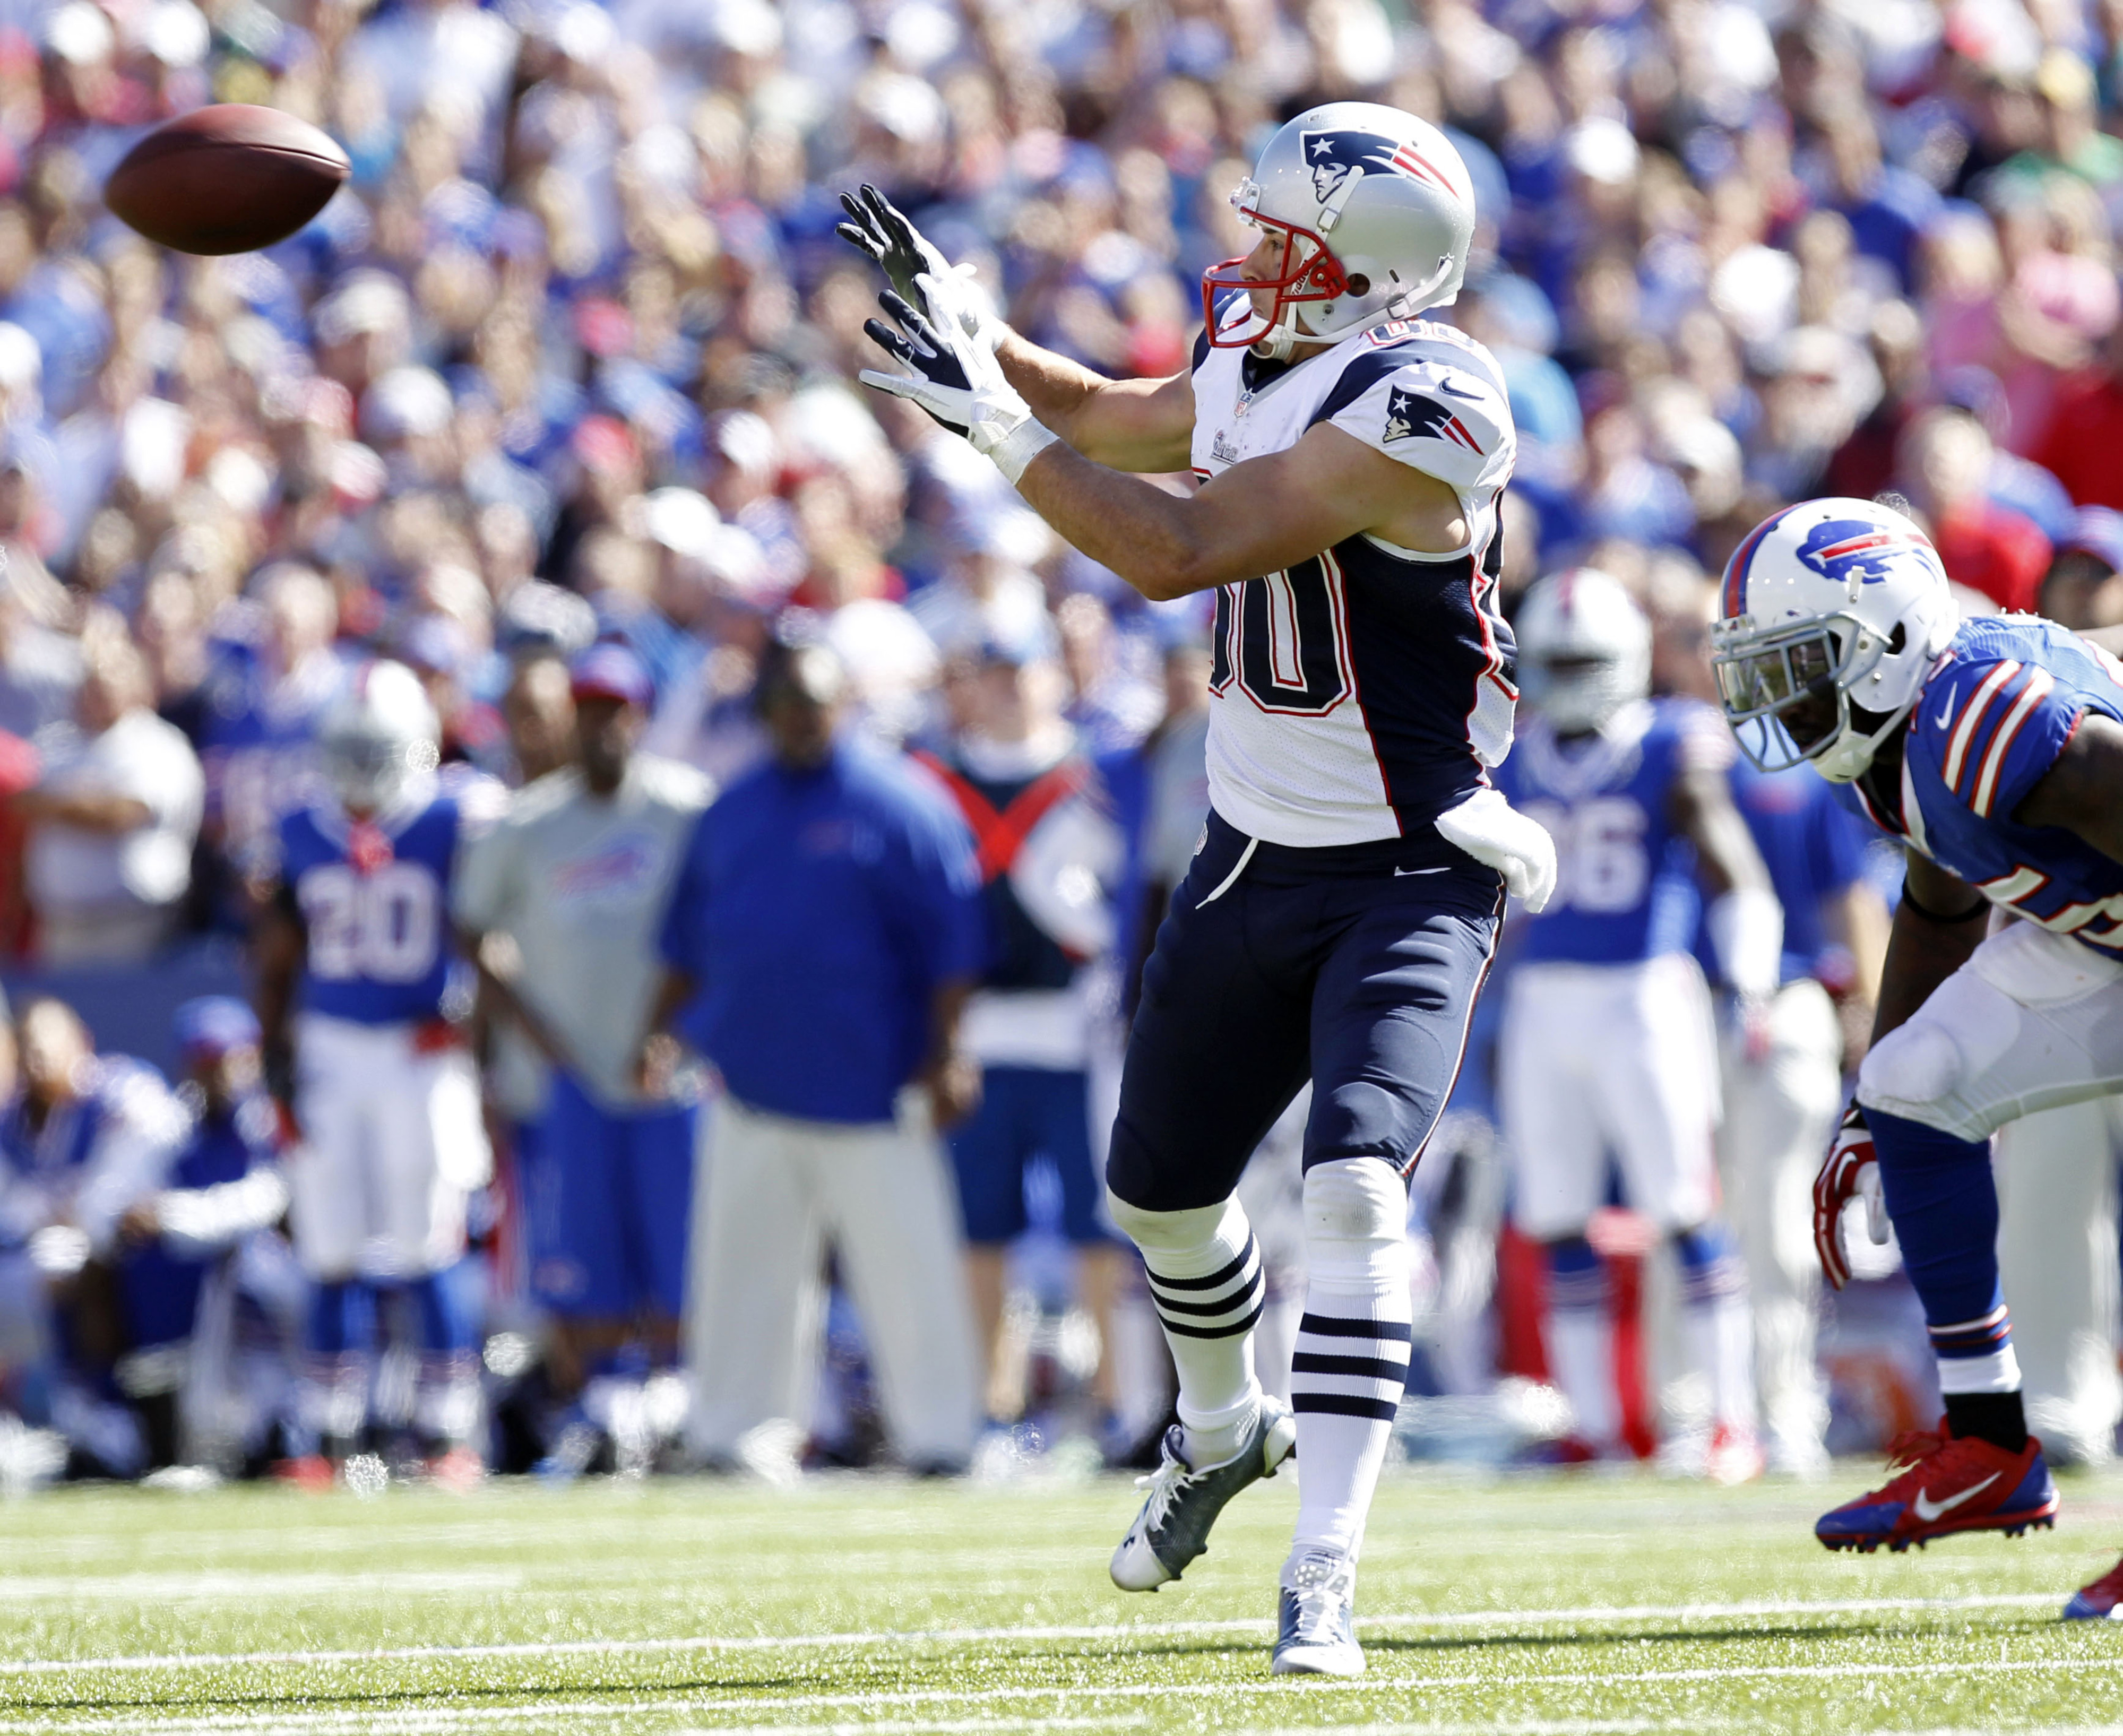 Patriots injuries: Rob Gronkowski, Danny Amendola expected to play Sunday, per report